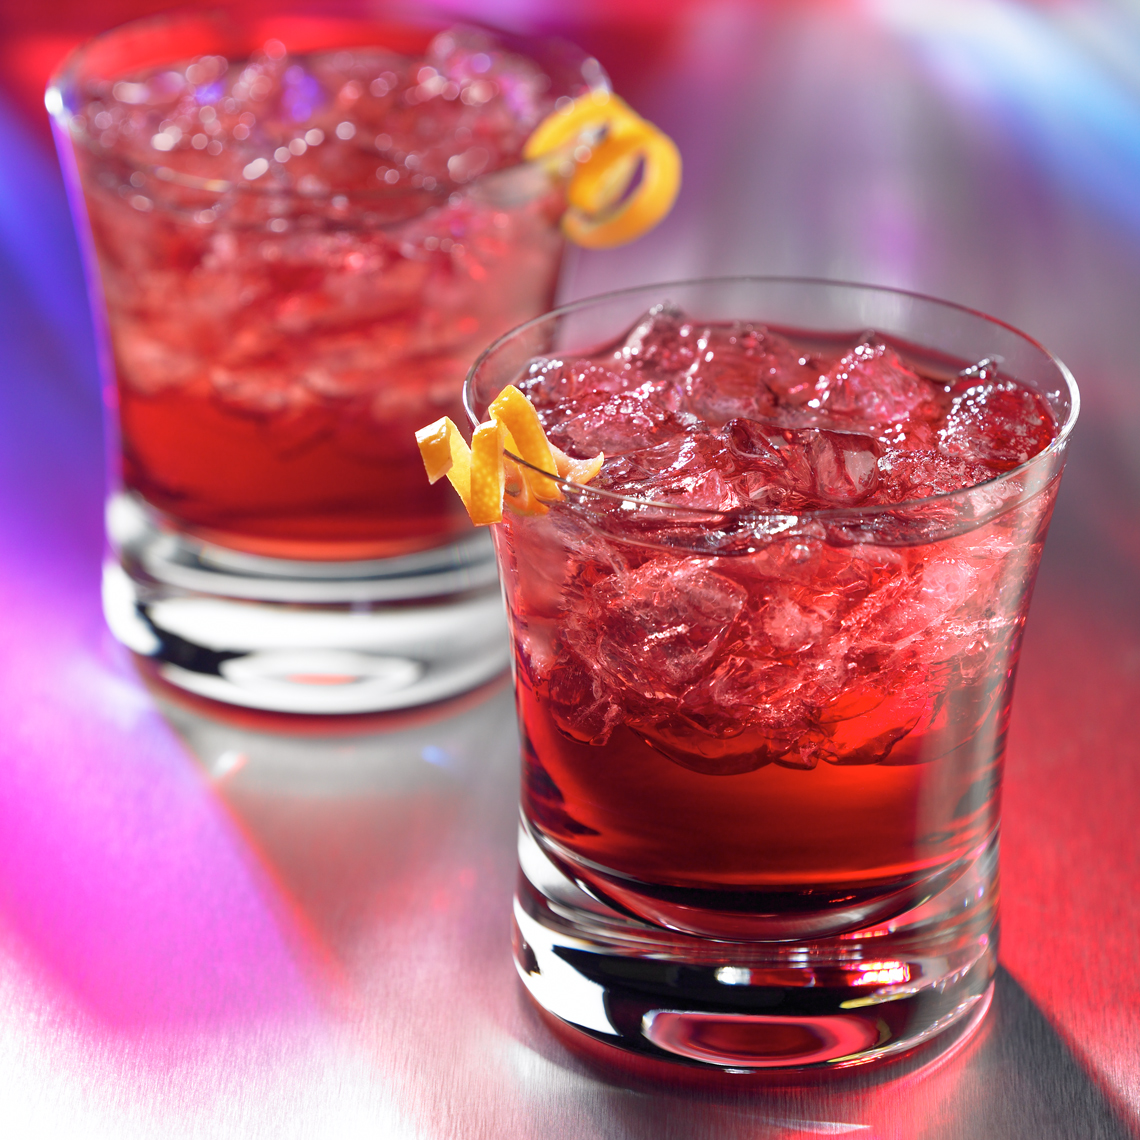 O-&-Cranberry cocktail